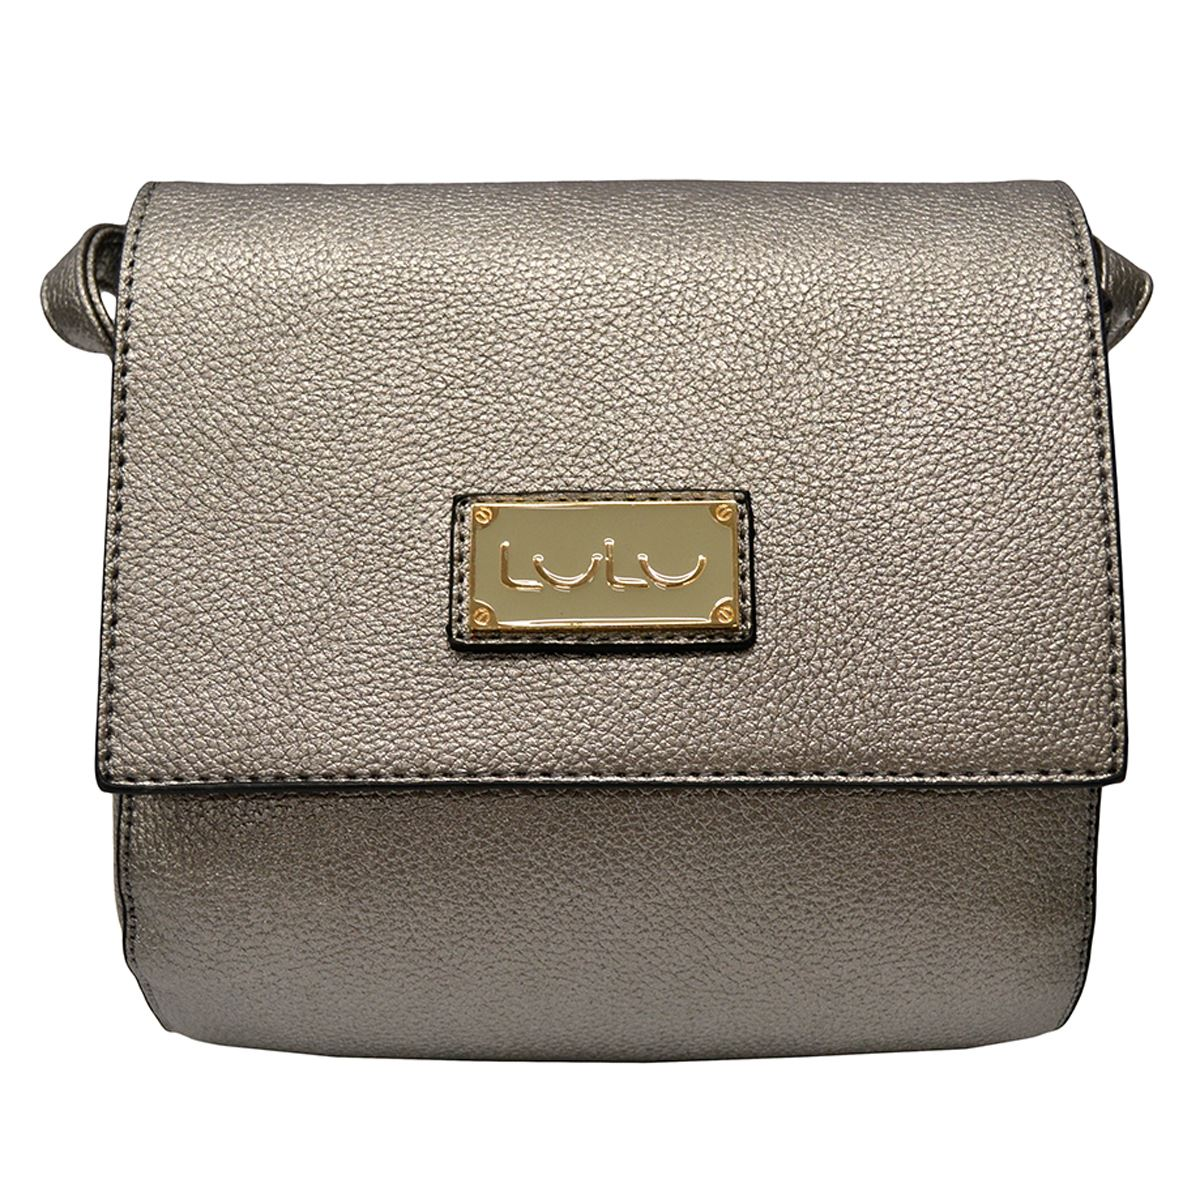 Bolsa cross body chica con tapa material y color liso  - Sanborns